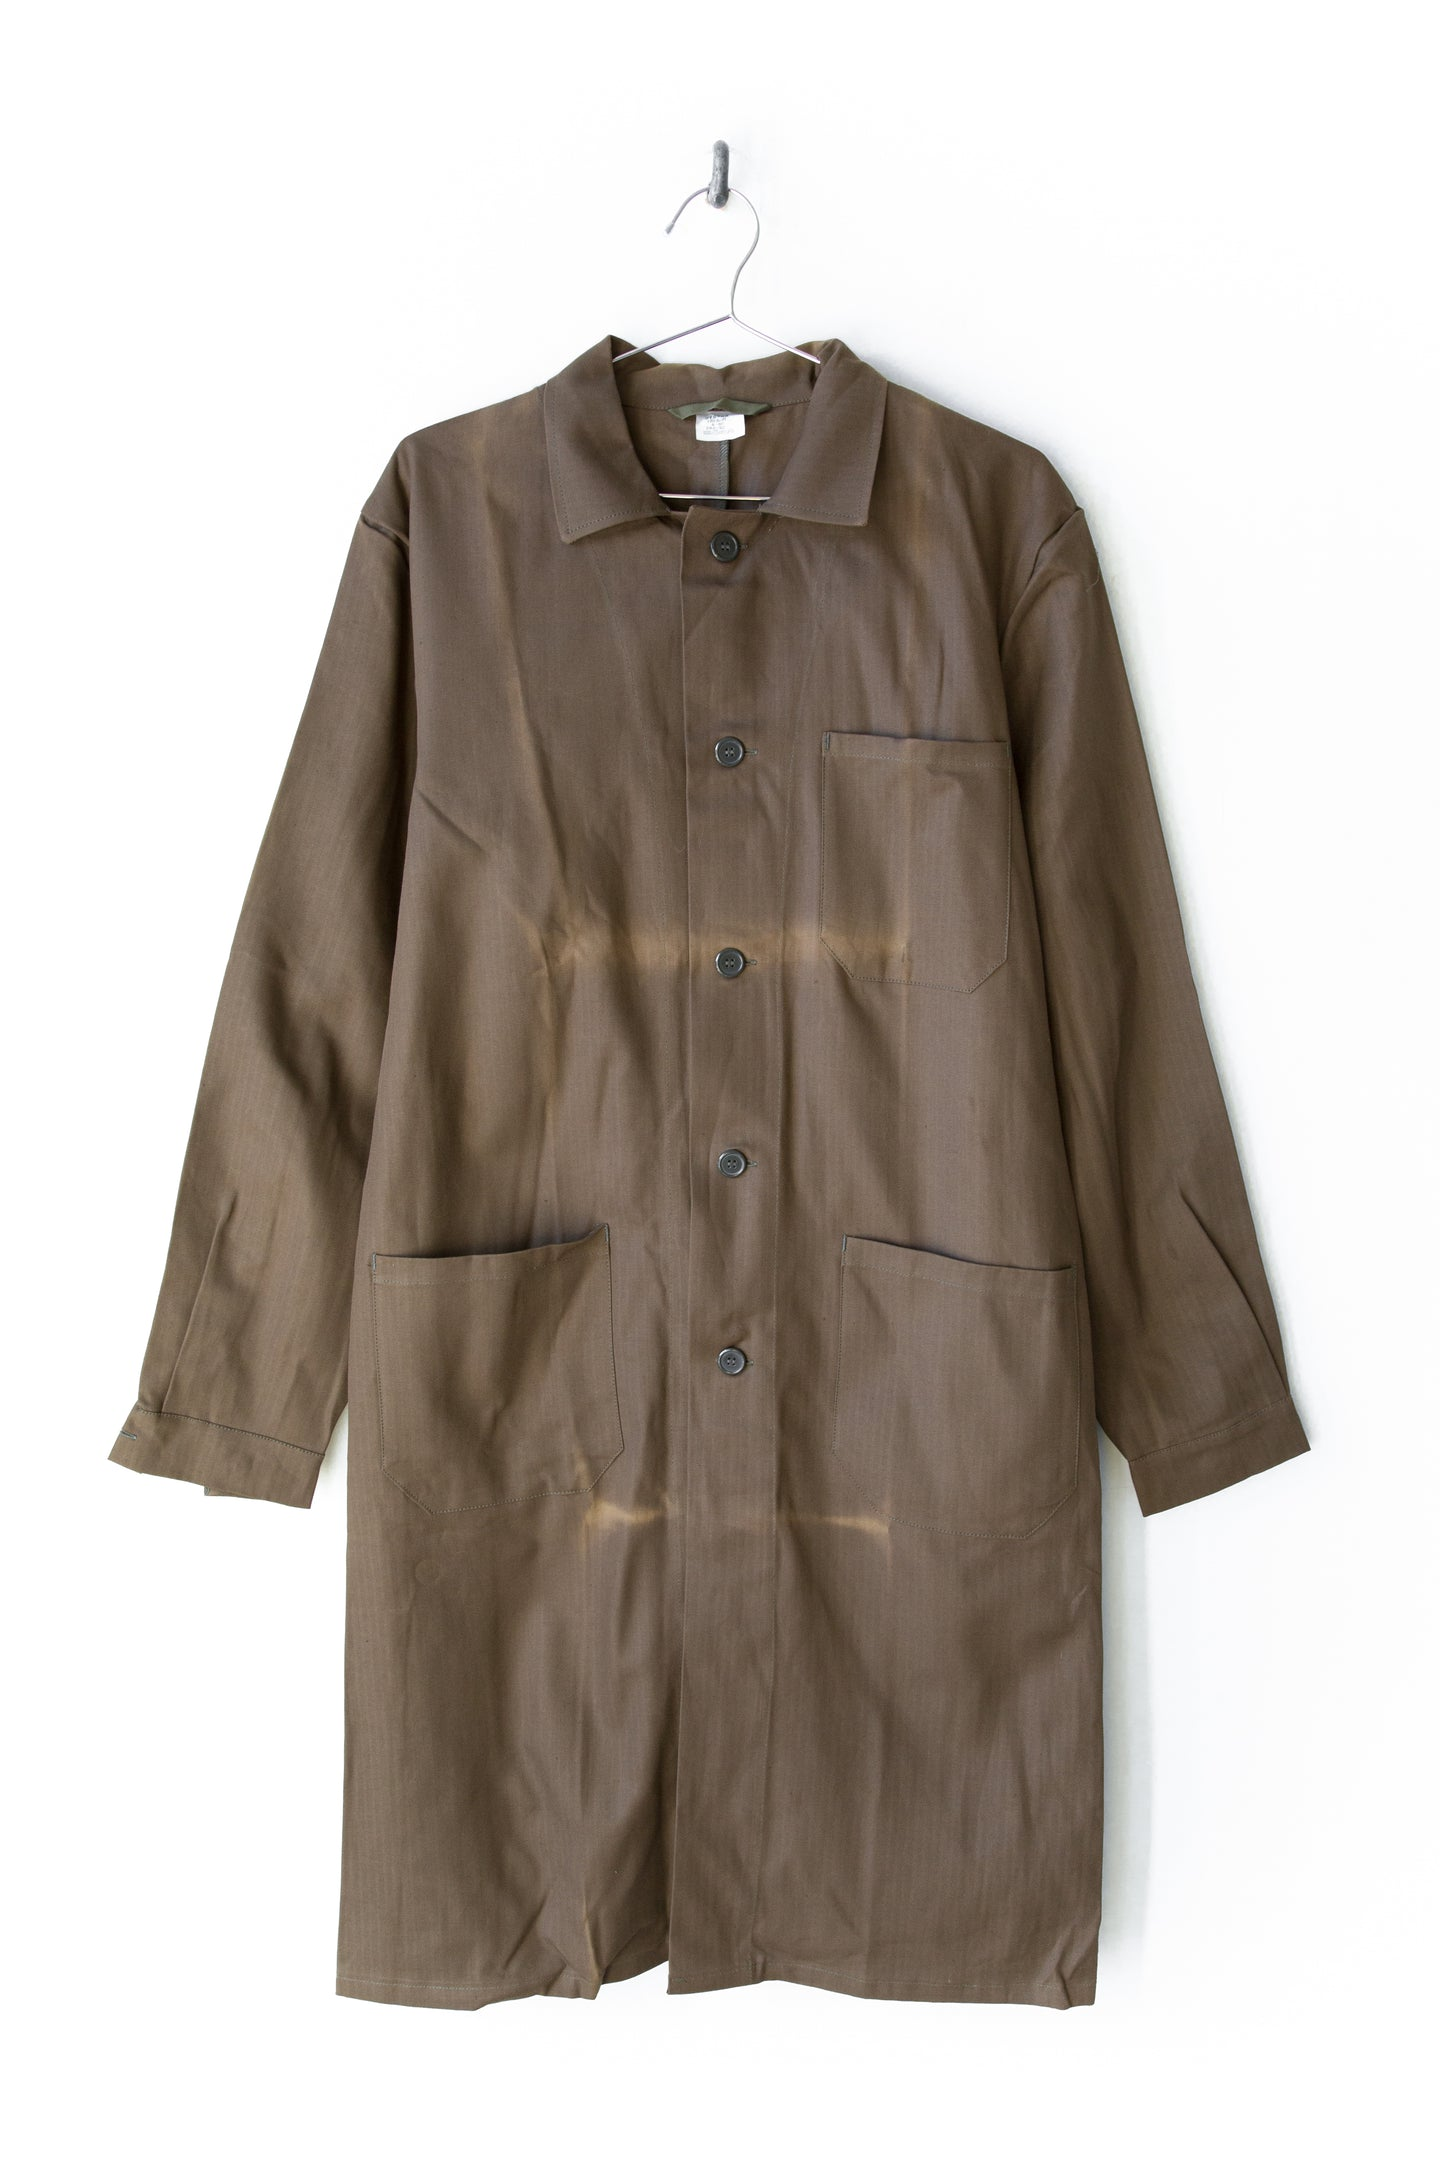 Sun Faded Chocolate Brown European Chore Coat